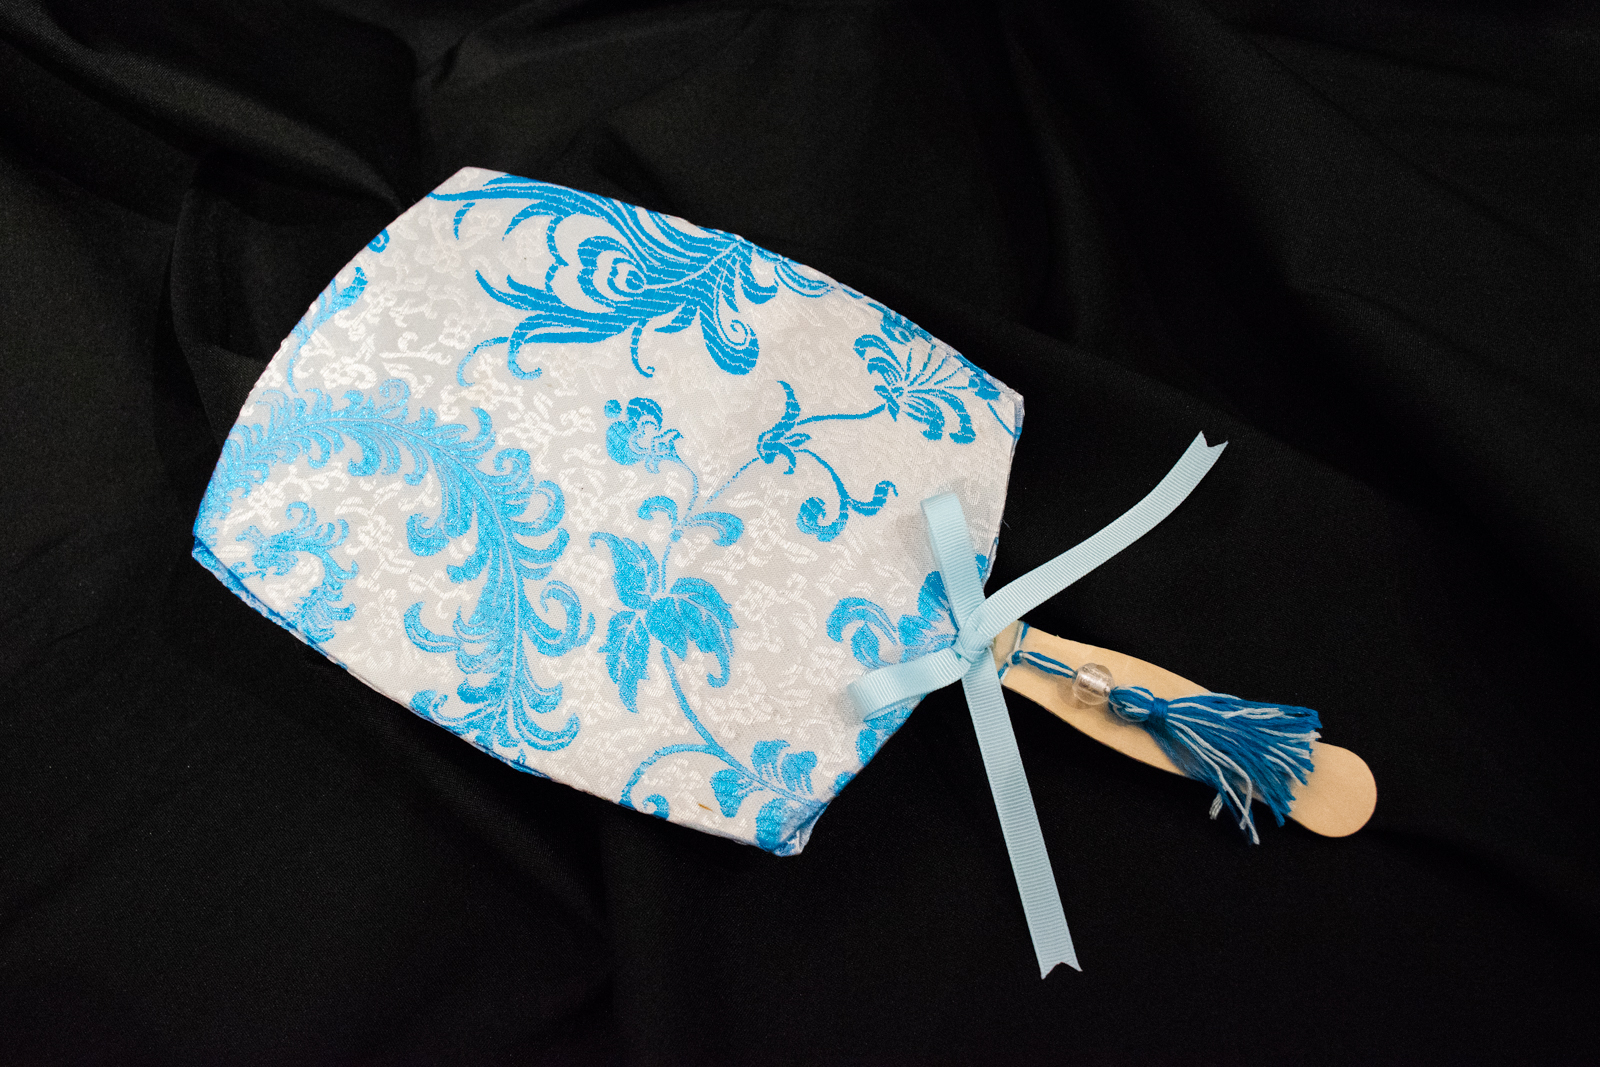 """""""Sumptuous Silks and Ancient Traditions"""" Attendees will be guided in making their own personalized fans like the one shown. Inspired by a variety of traditional Chinese hand fan designs, the silk brocade fans can be personalized to the makers' taste. They can also enjoy a complimentary wine or beer while making their fans."""